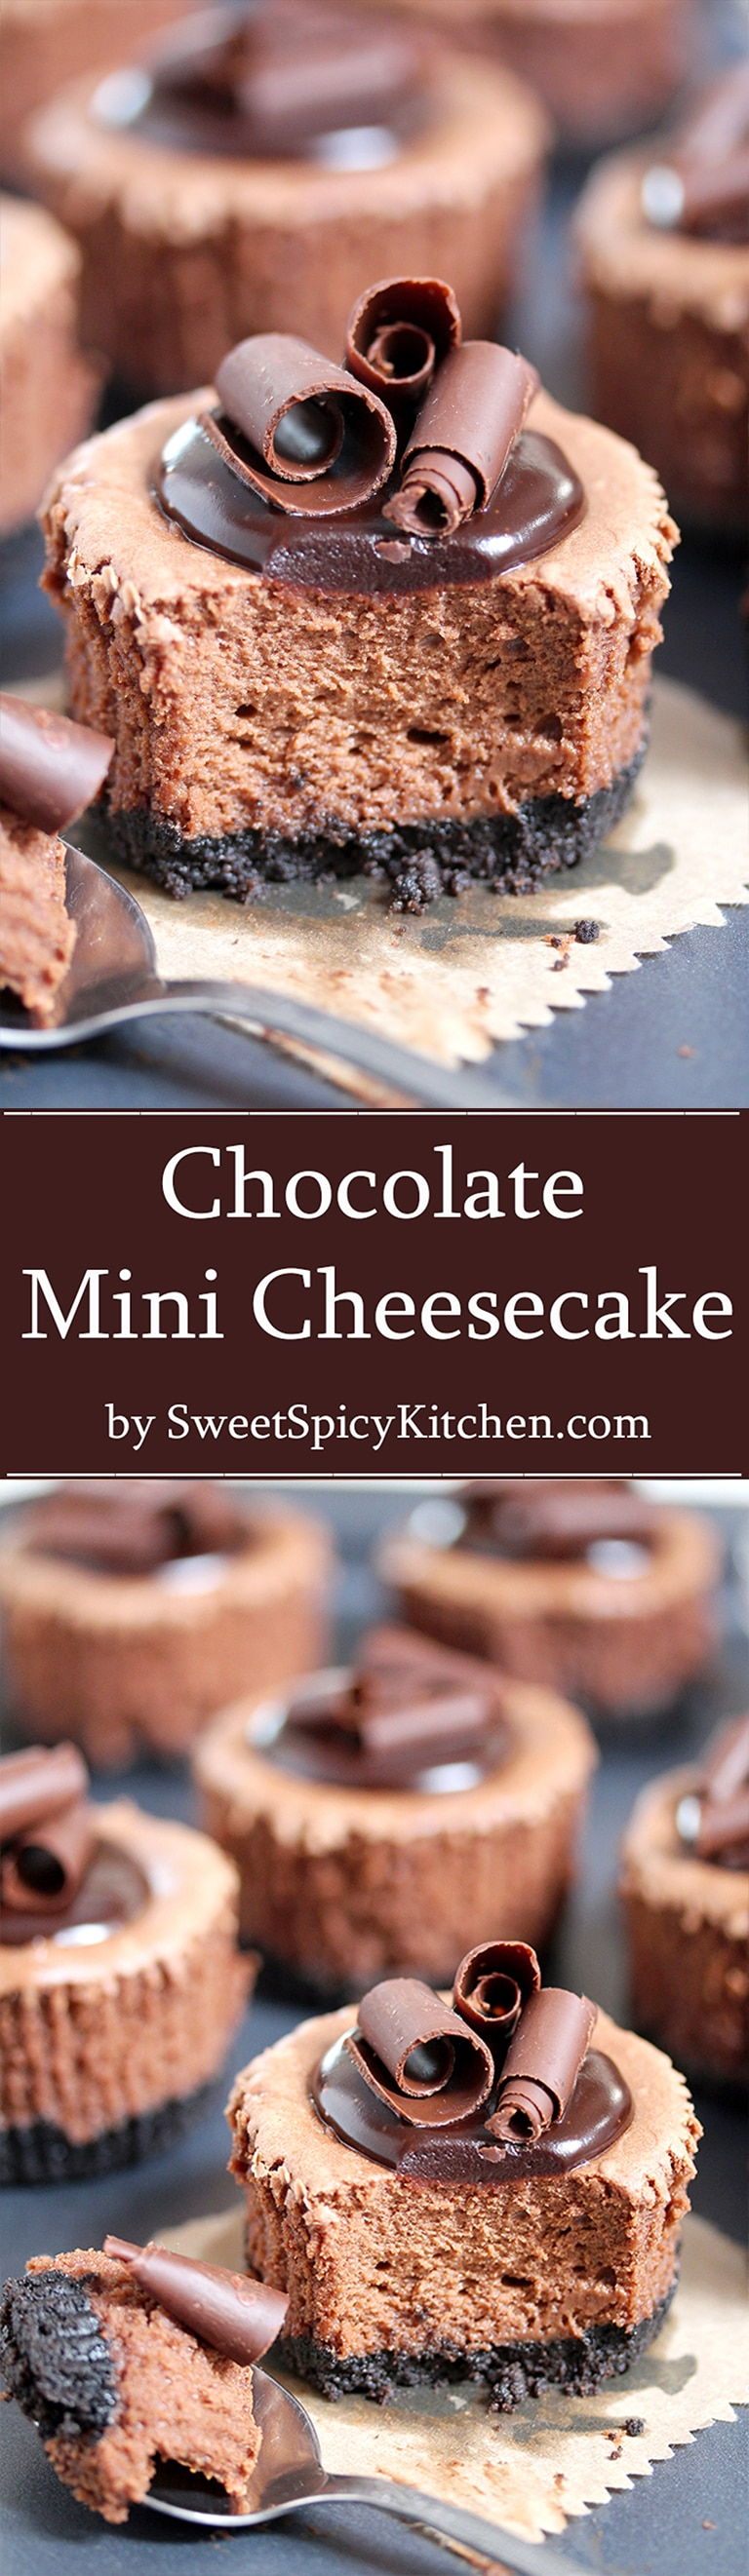 Chocolate Mini Cheesecake with Oreo Crust – this creamy, rich cheesecake with full chocolate taste and Oreo layer, topped with chocolate ganache and formed as mini cheesecakes, will be loved by all the chocolate fans.